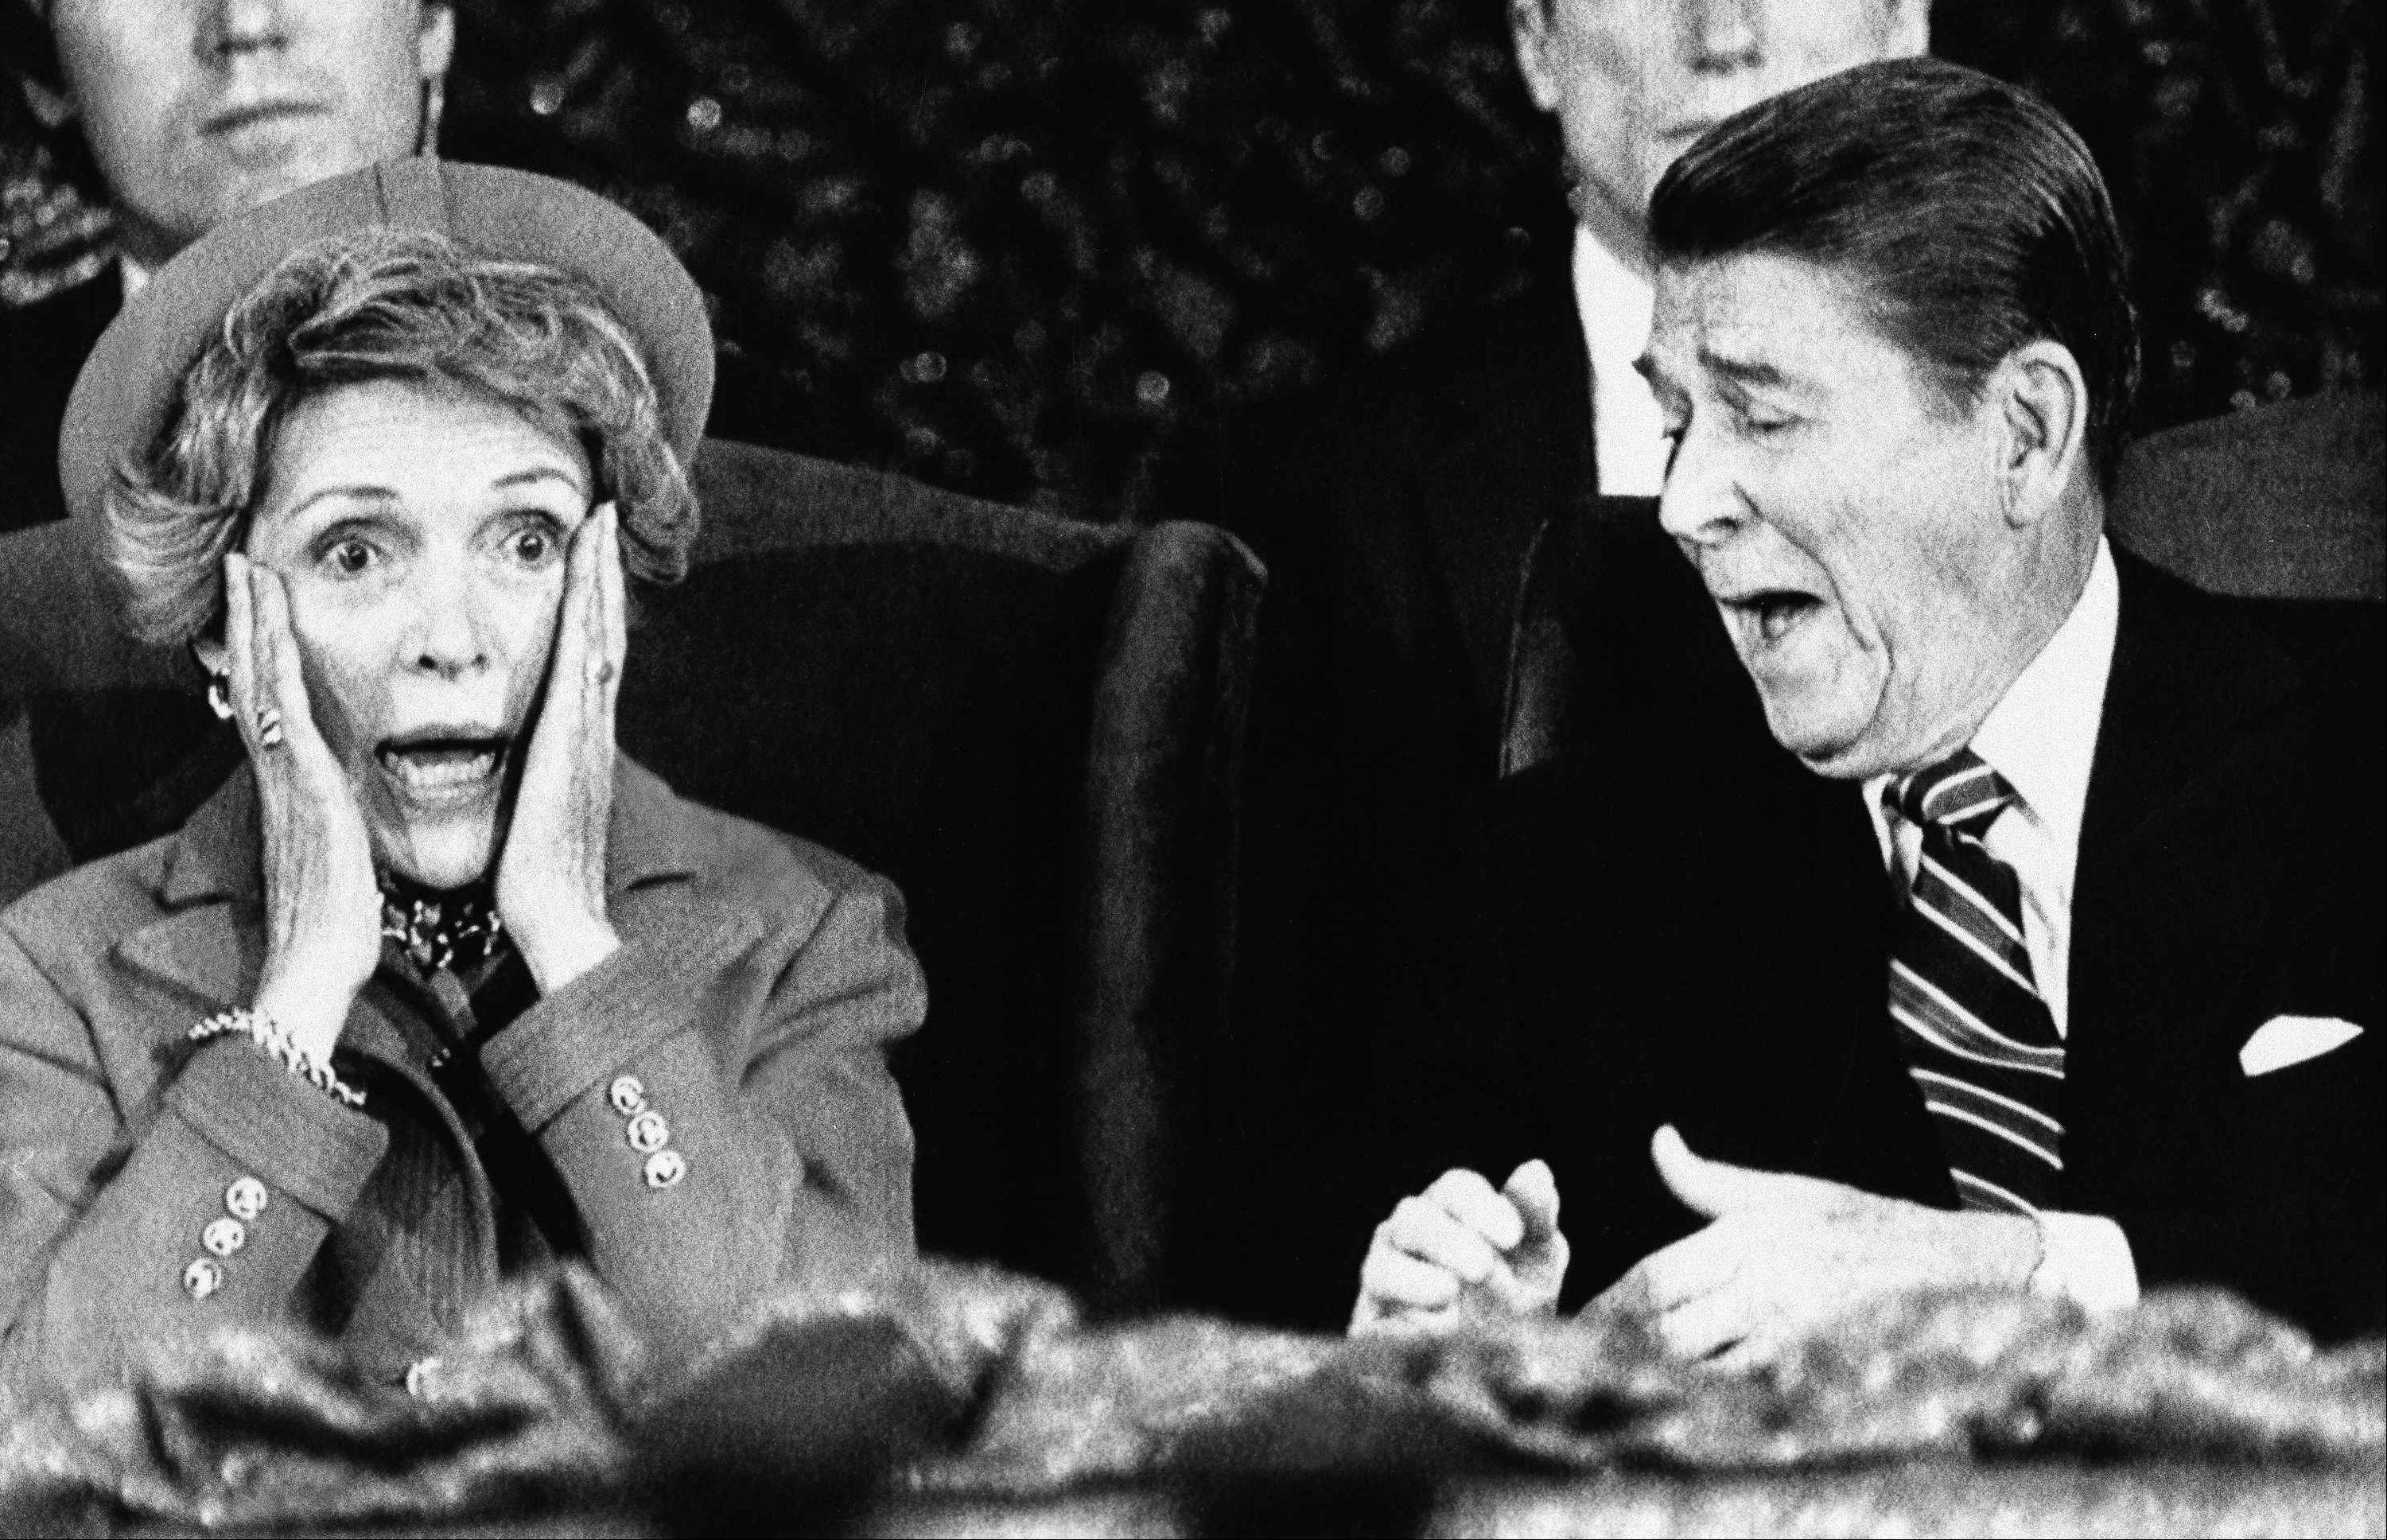 President Ronald Reagan and wife Nancy react after Mrs. Reagan sat down after speaking and forgot to introduce the President at the Capital Center in Landover, Md., Monday, Jan. 21, 1985, during an event held for those who would have participated in the inaugural parade, which was canceled because of bad weather.